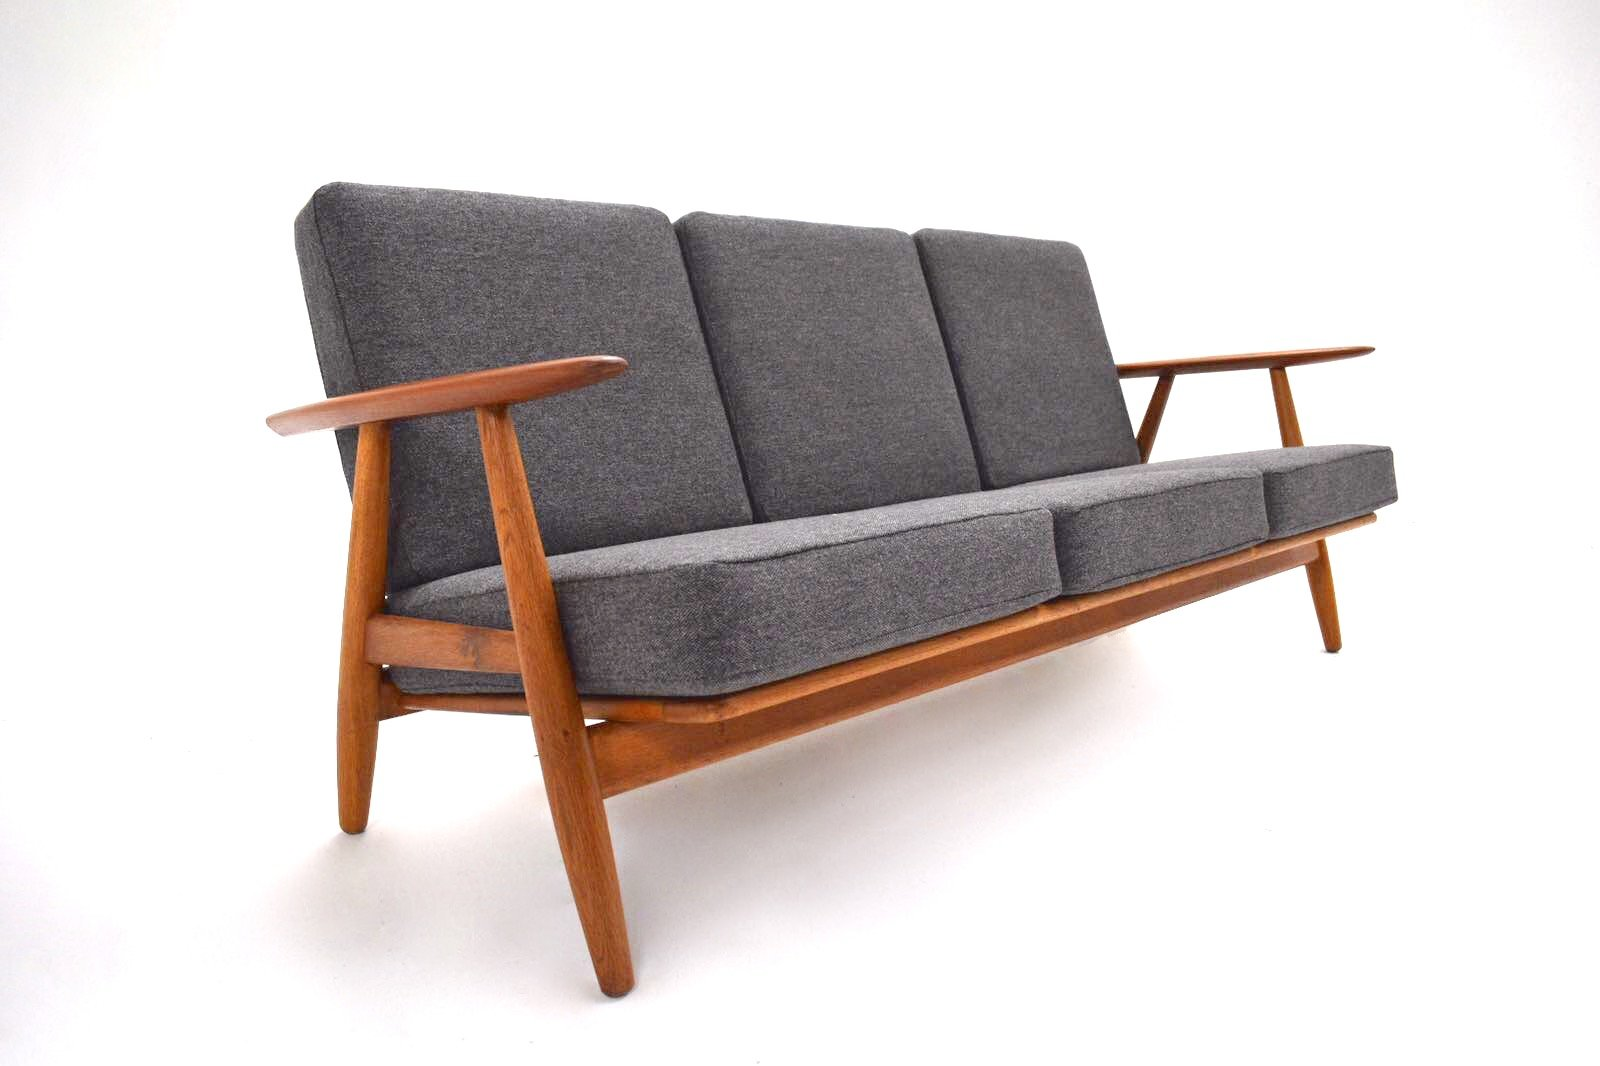 Danish GE 240 Oak, Teak U0026 Gray Wool Cigar Sofa By Hans J. Wegner For  Getama, 1950s